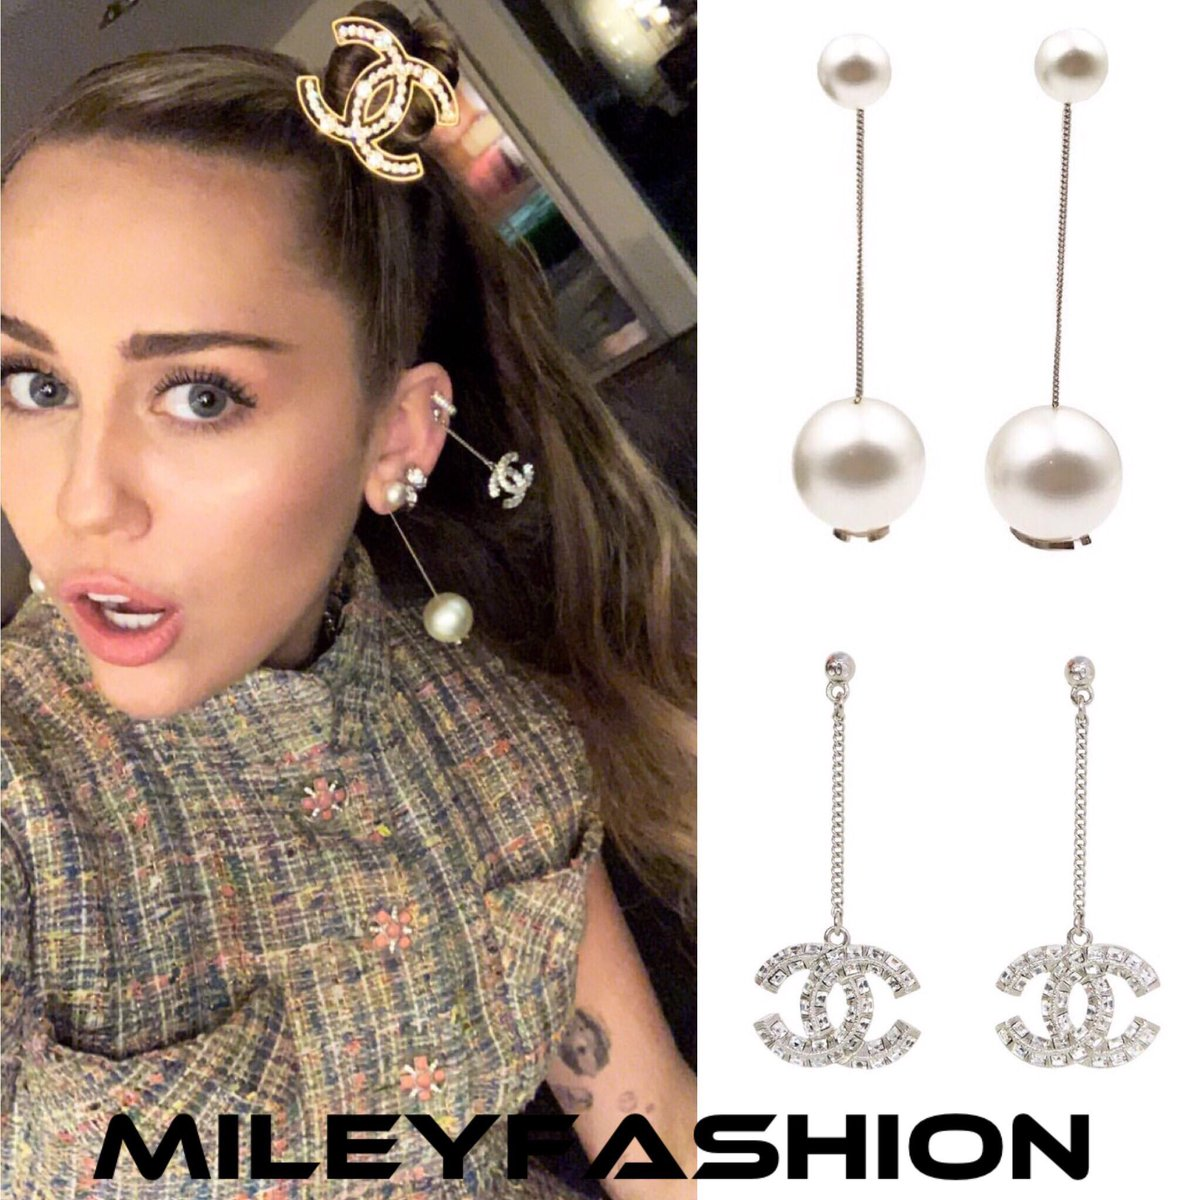 Miley Cyrus Fashion On Twitter Style Guide Mileycyrus Wore Chanel S Pave Crystal Cc Drop Pierced Earrings And Chanel S Gold Pearl Classic Gumball Faux Dangle Piercing Earrings In A Photo That She Posted